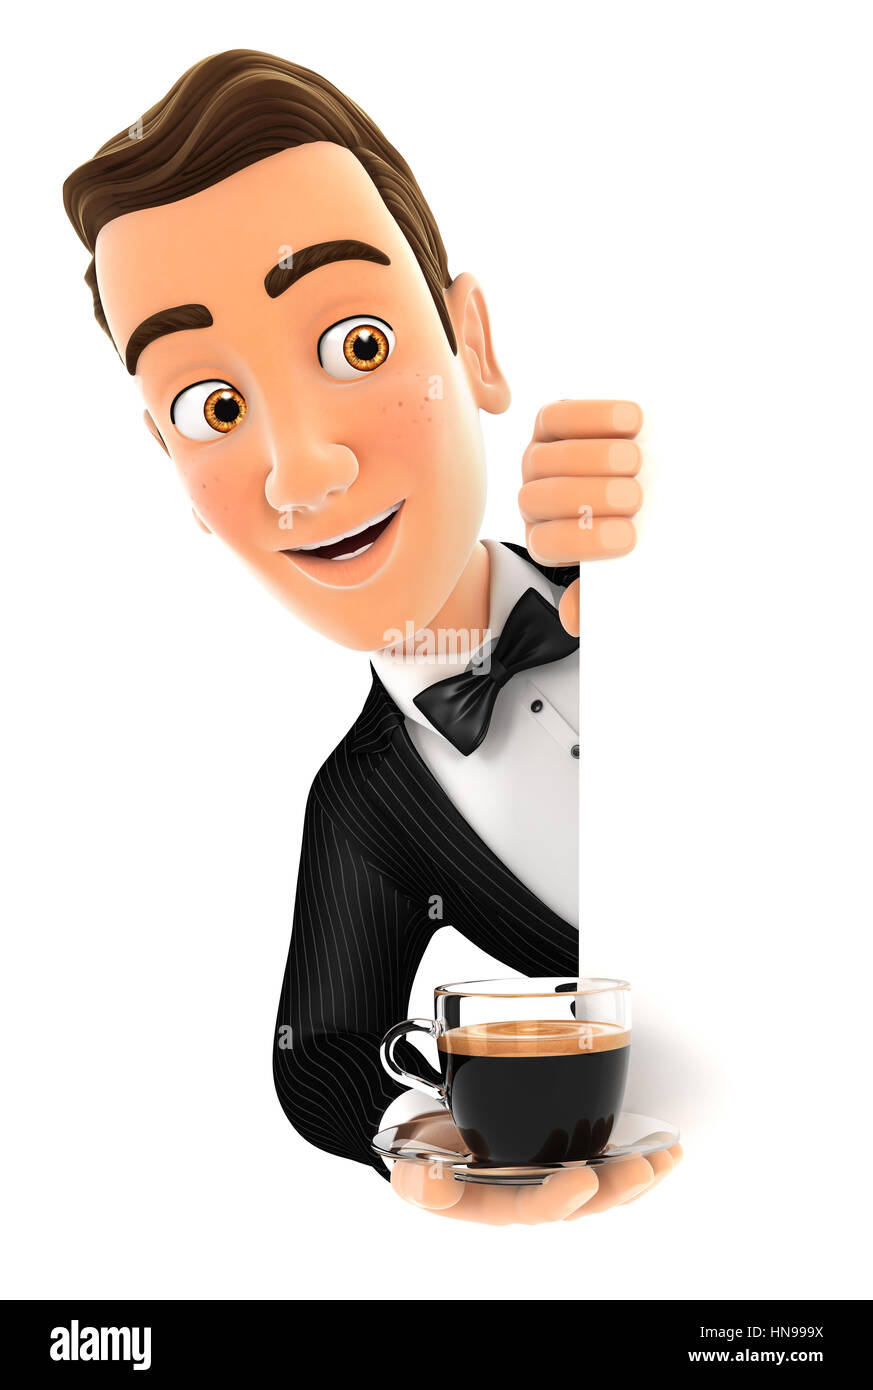 3d waiter behind left wall and holding cup of coffee, illustration with isolated white background Stock Photo